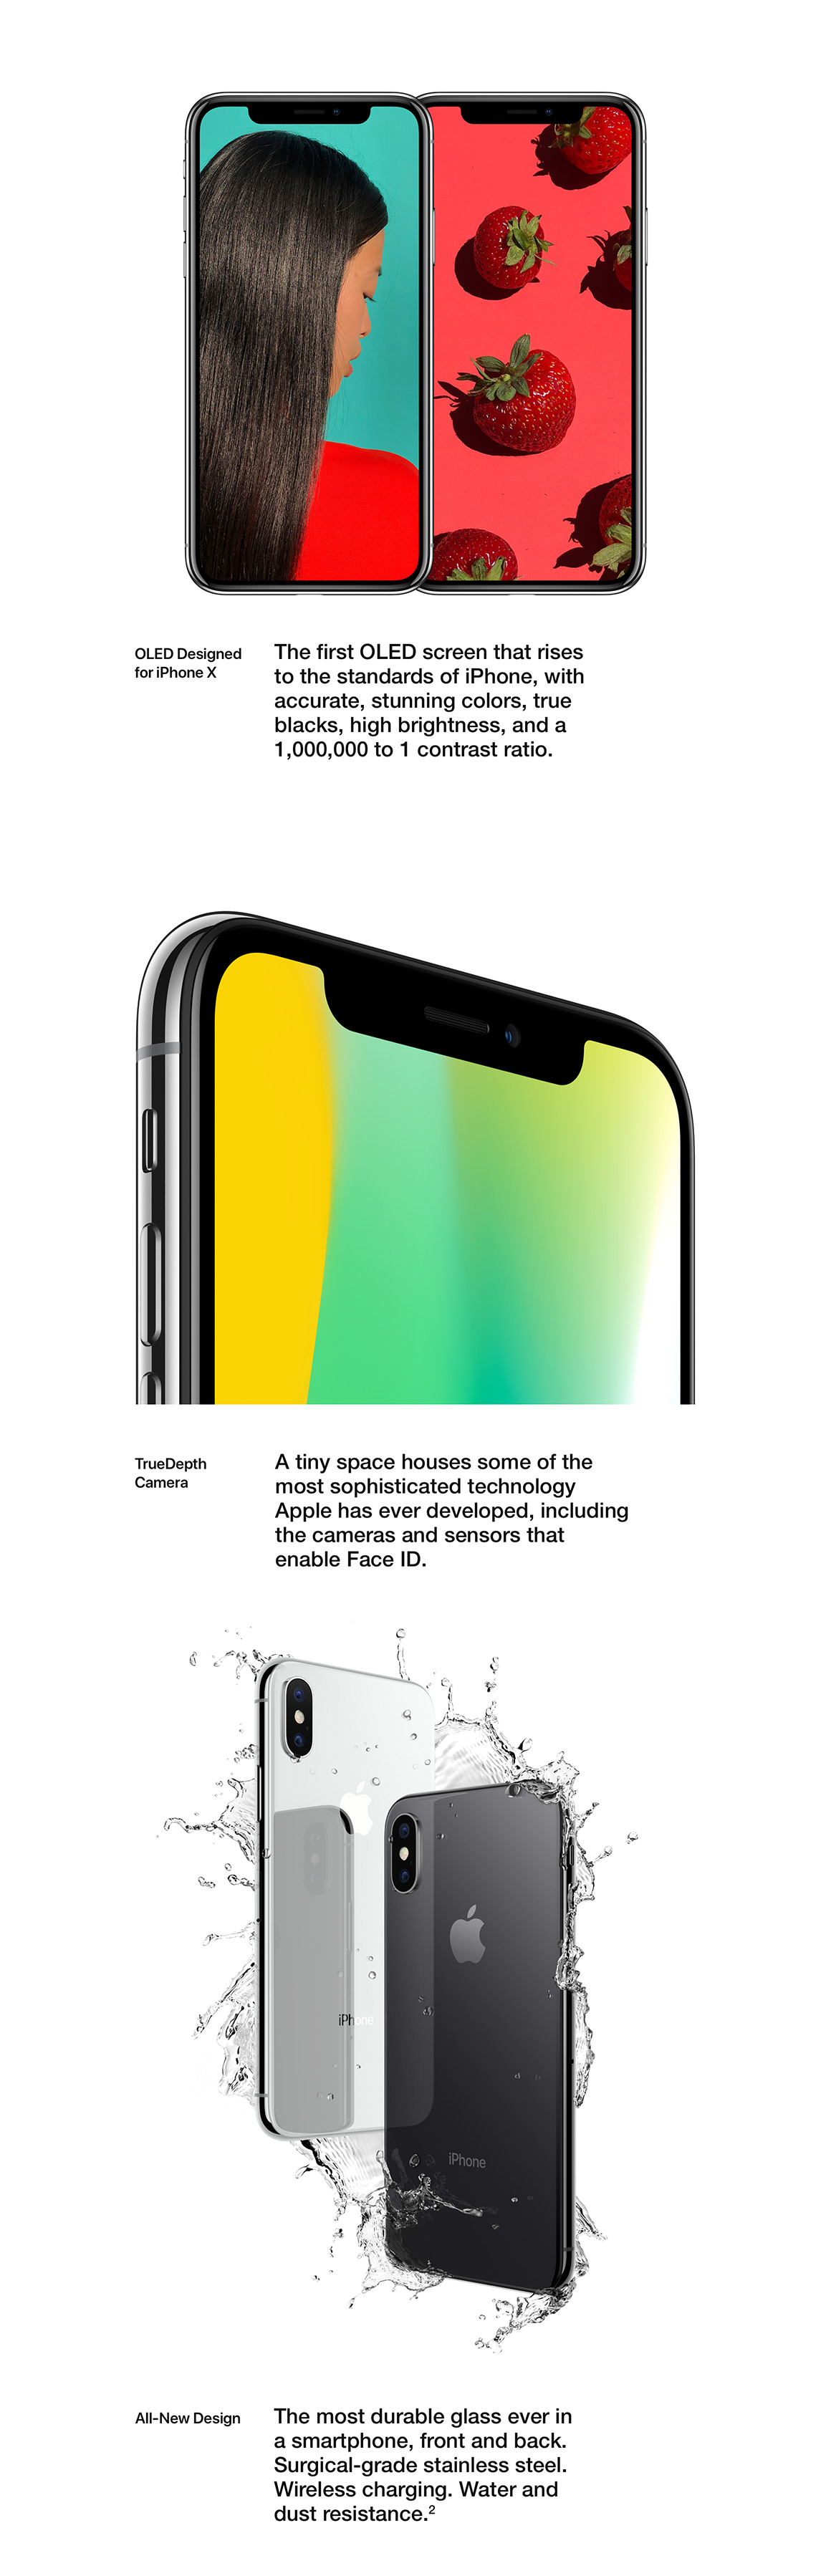 OLED Designed for iPhone X